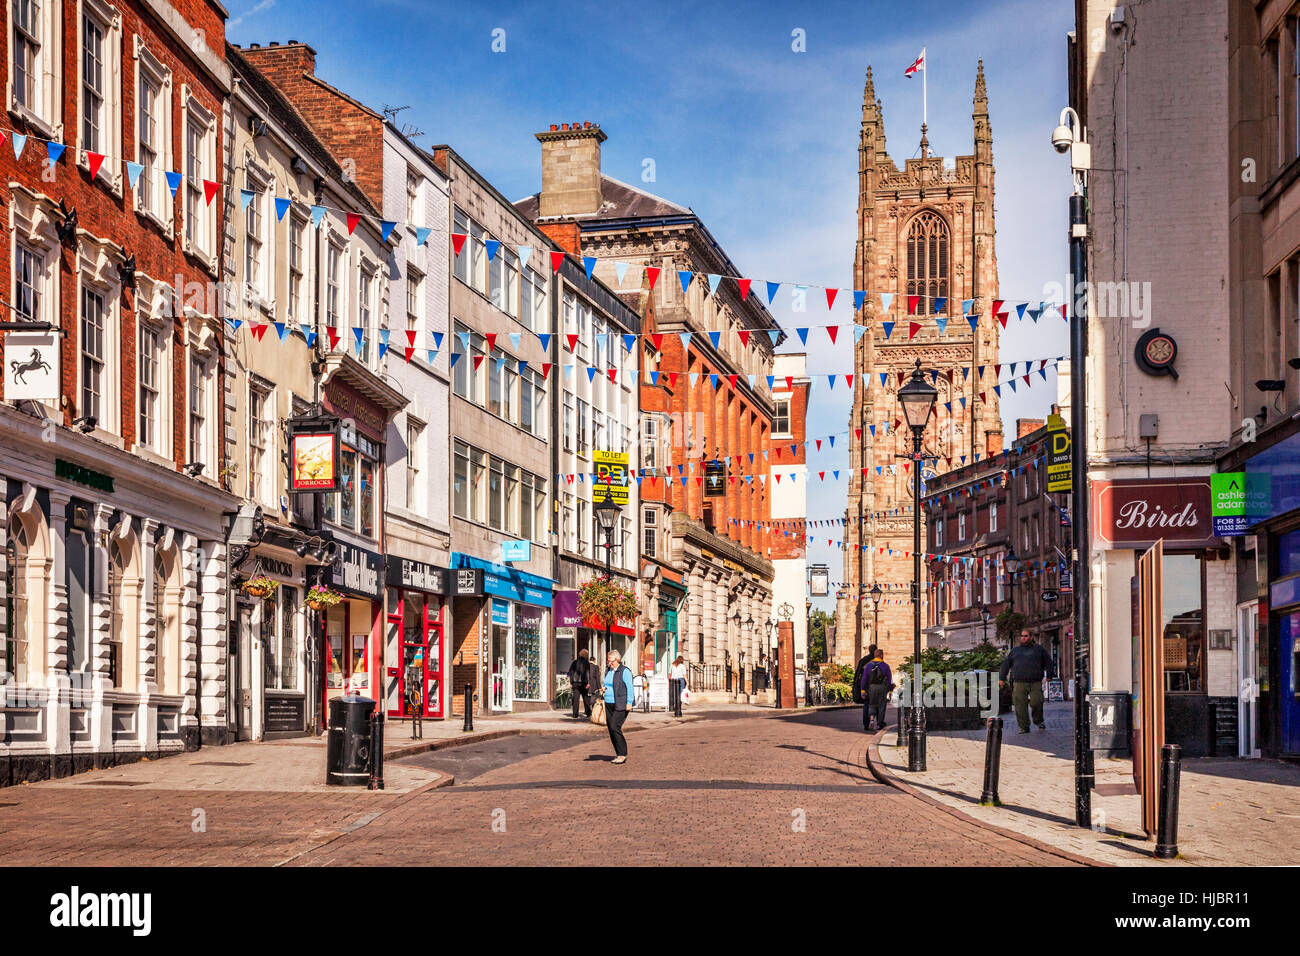 People shopping in Iron Gate in the centre of Derby, England, UK - Stock Image